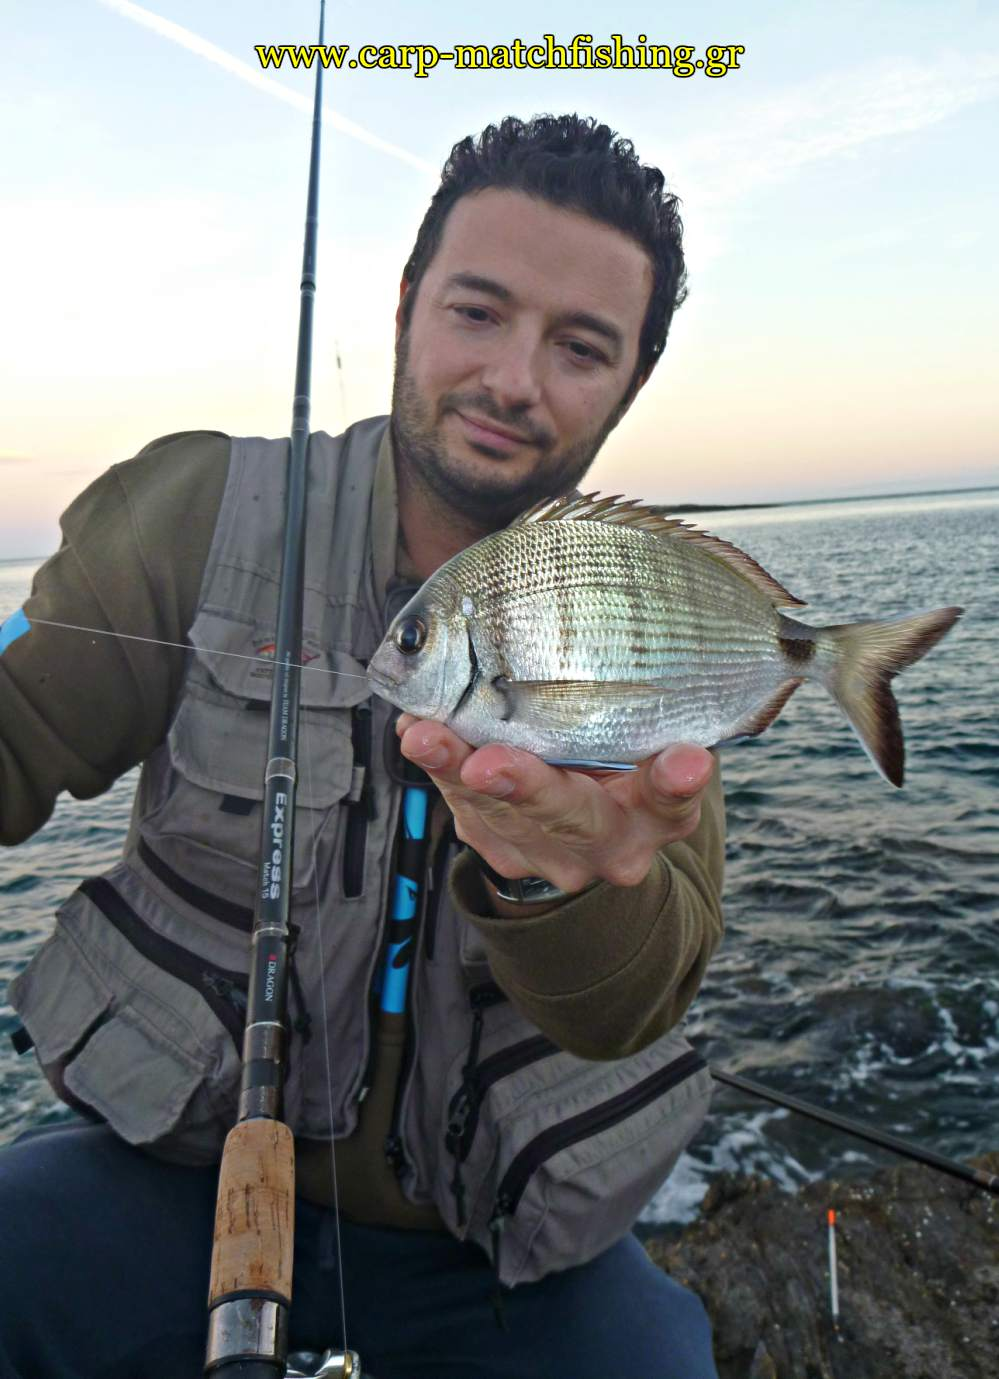 sargos-matchfishing-wagglers-fishmania-floatline-carpmatchfishing